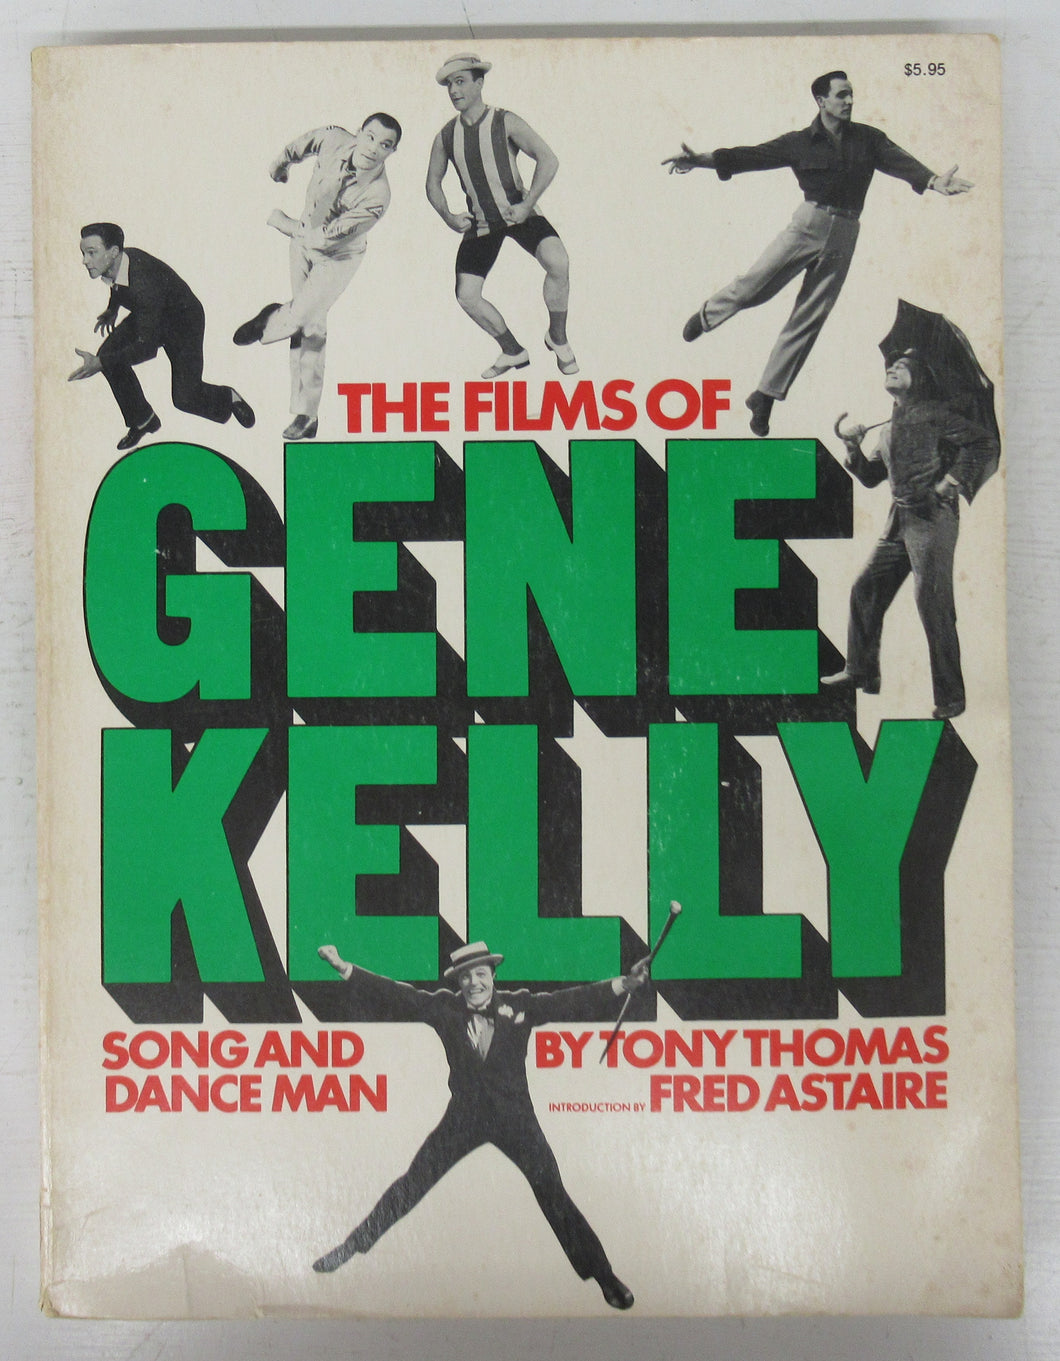 The Films of Gene Kelly, Song and Dance Man